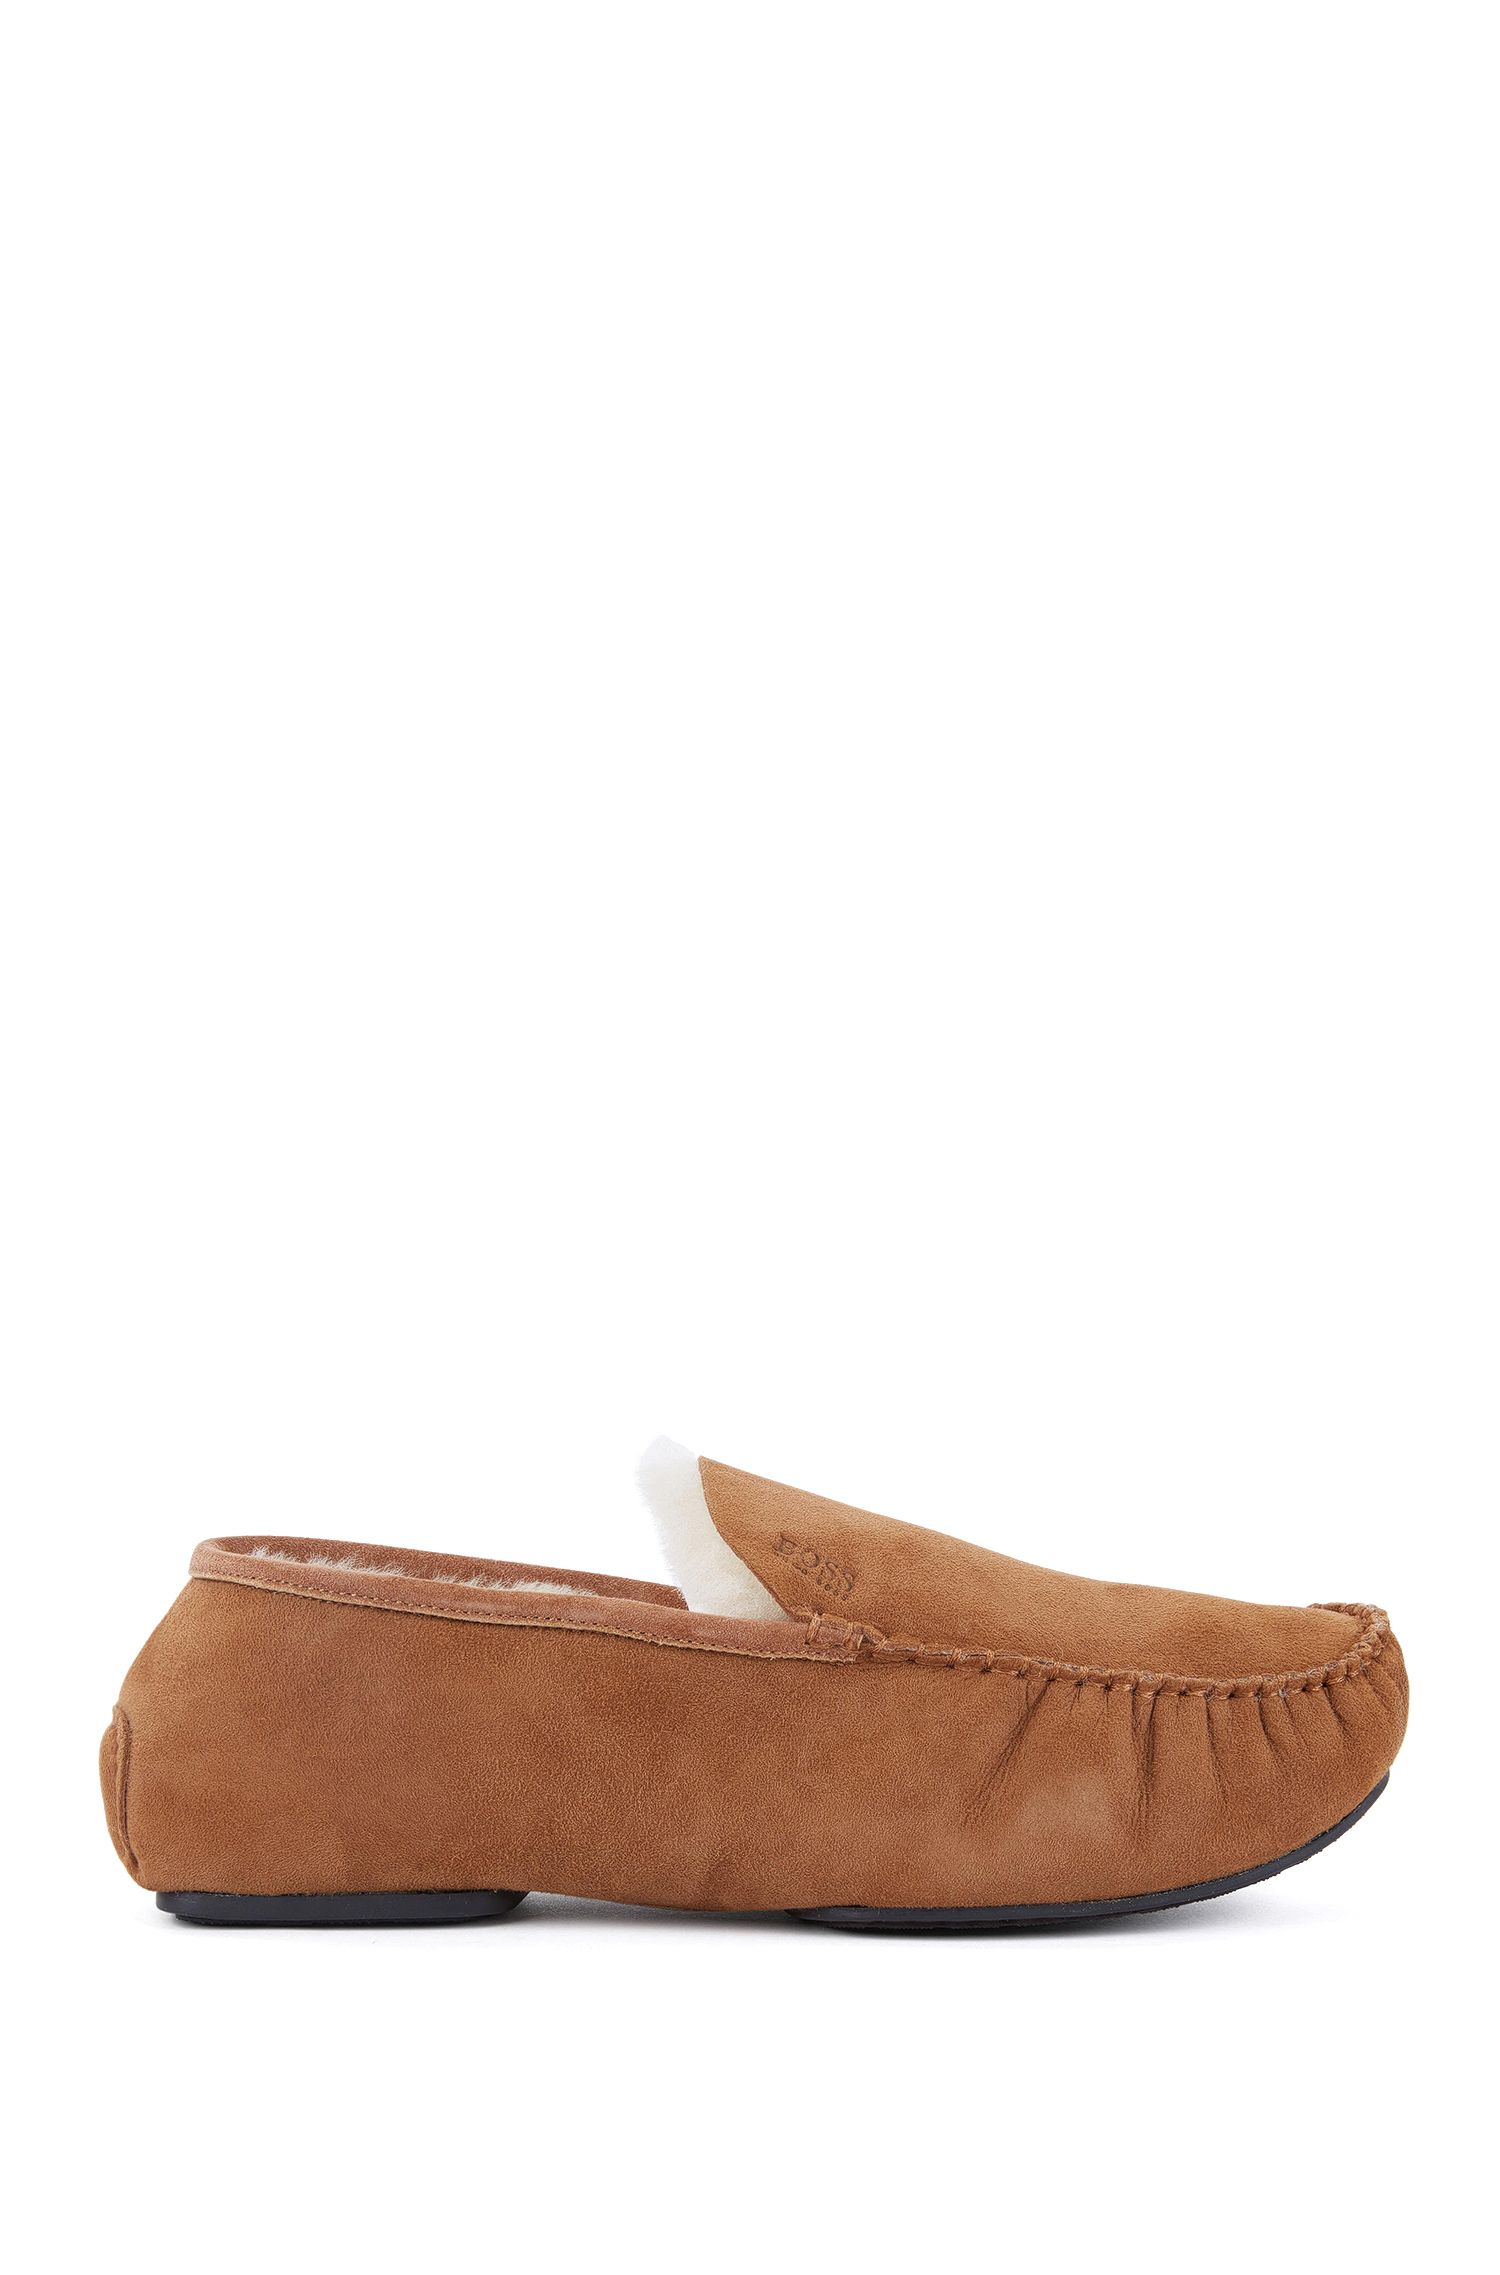 Sheerling-Lined Suede Moccasins | Relax Mocc